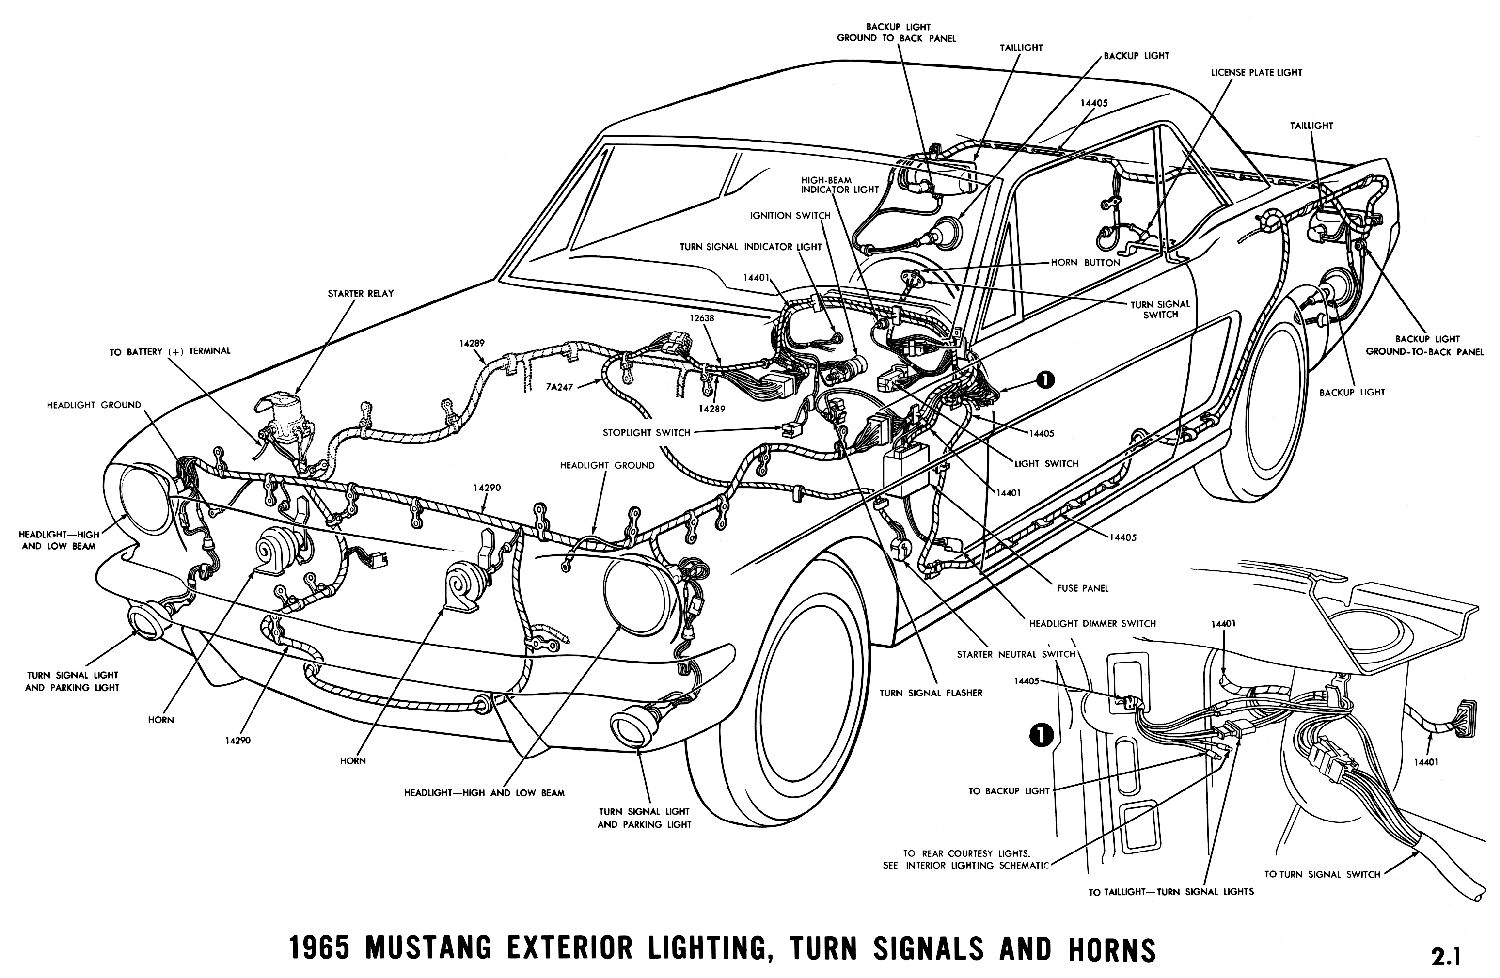 1965d 1965 mustang wiring diagrams average joe restoration  at aneh.co